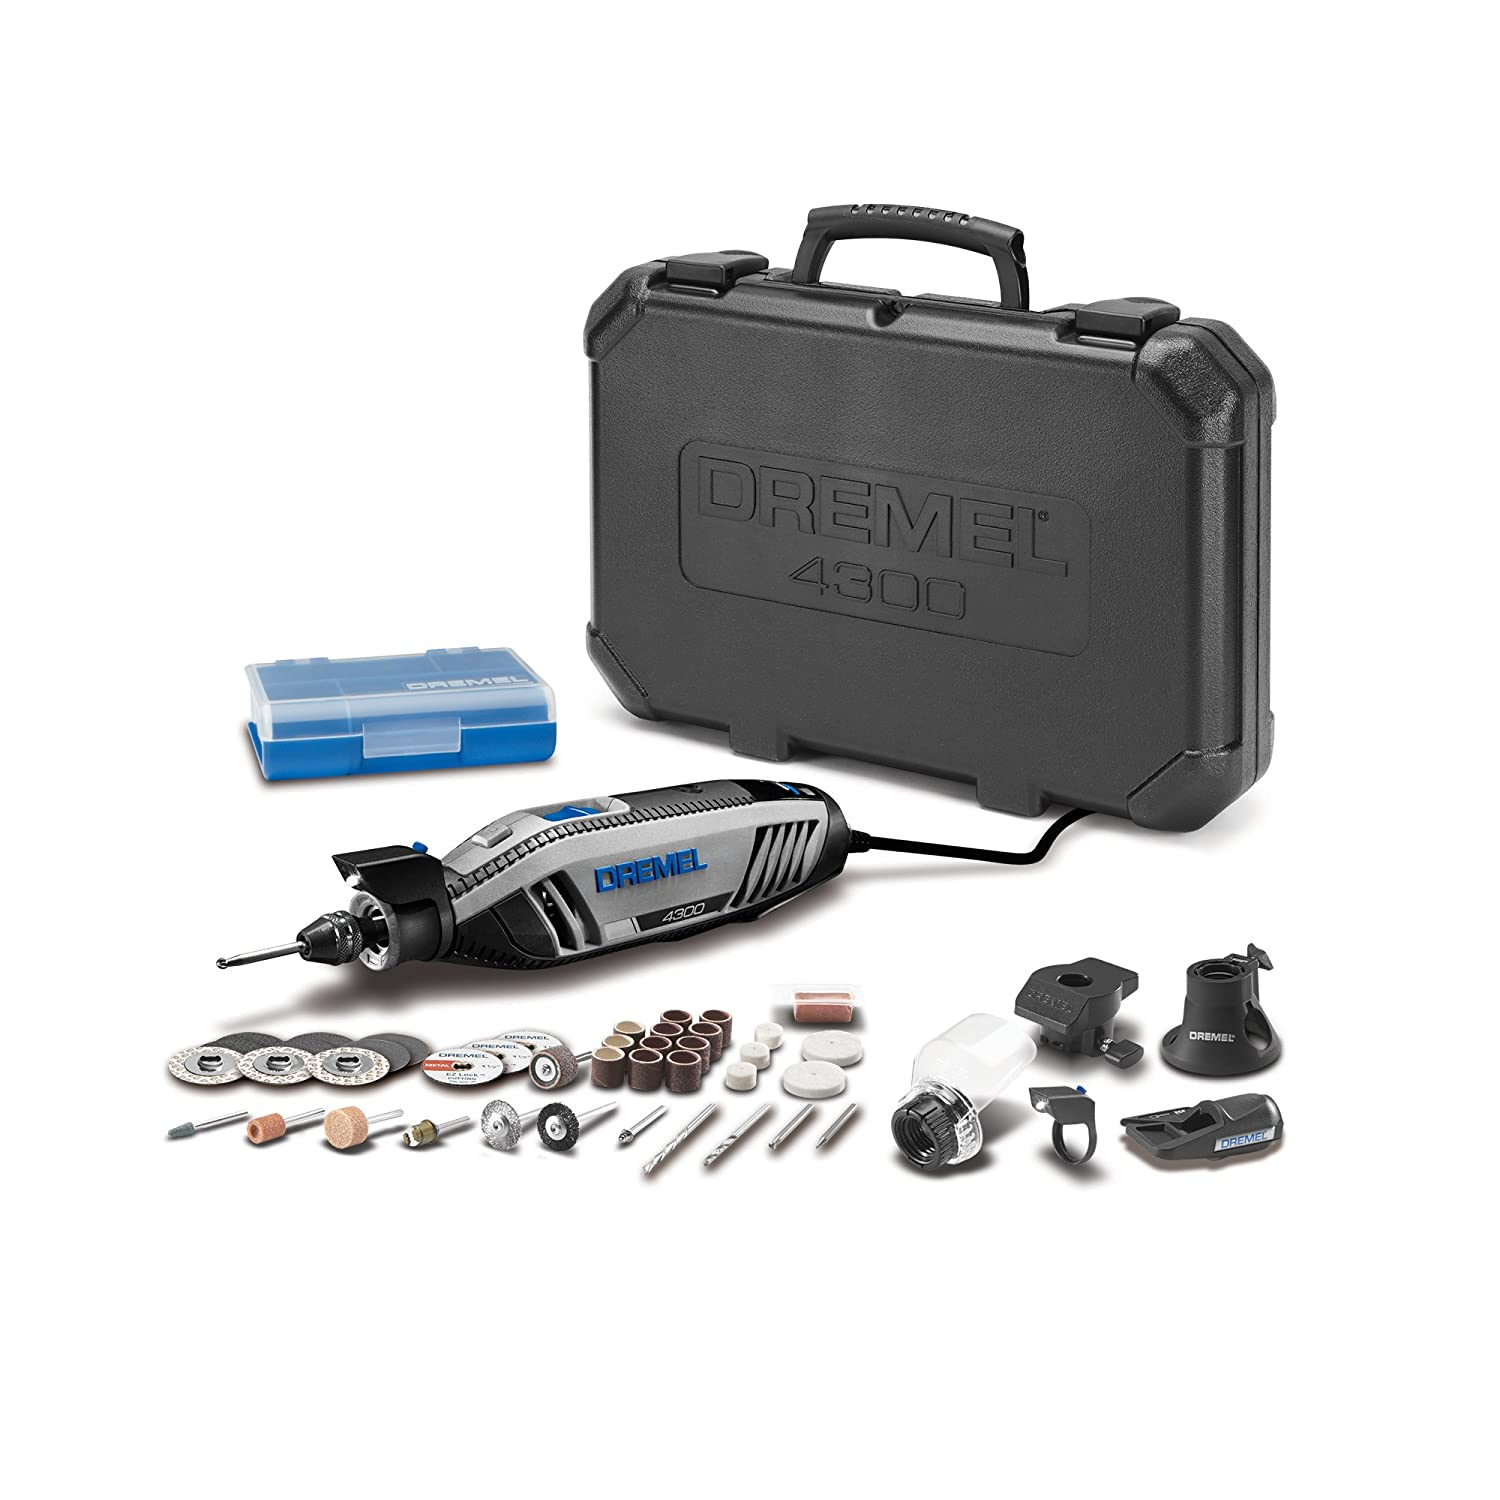 Dremel 4300-5/40 High Performance Rotary Tool Kit